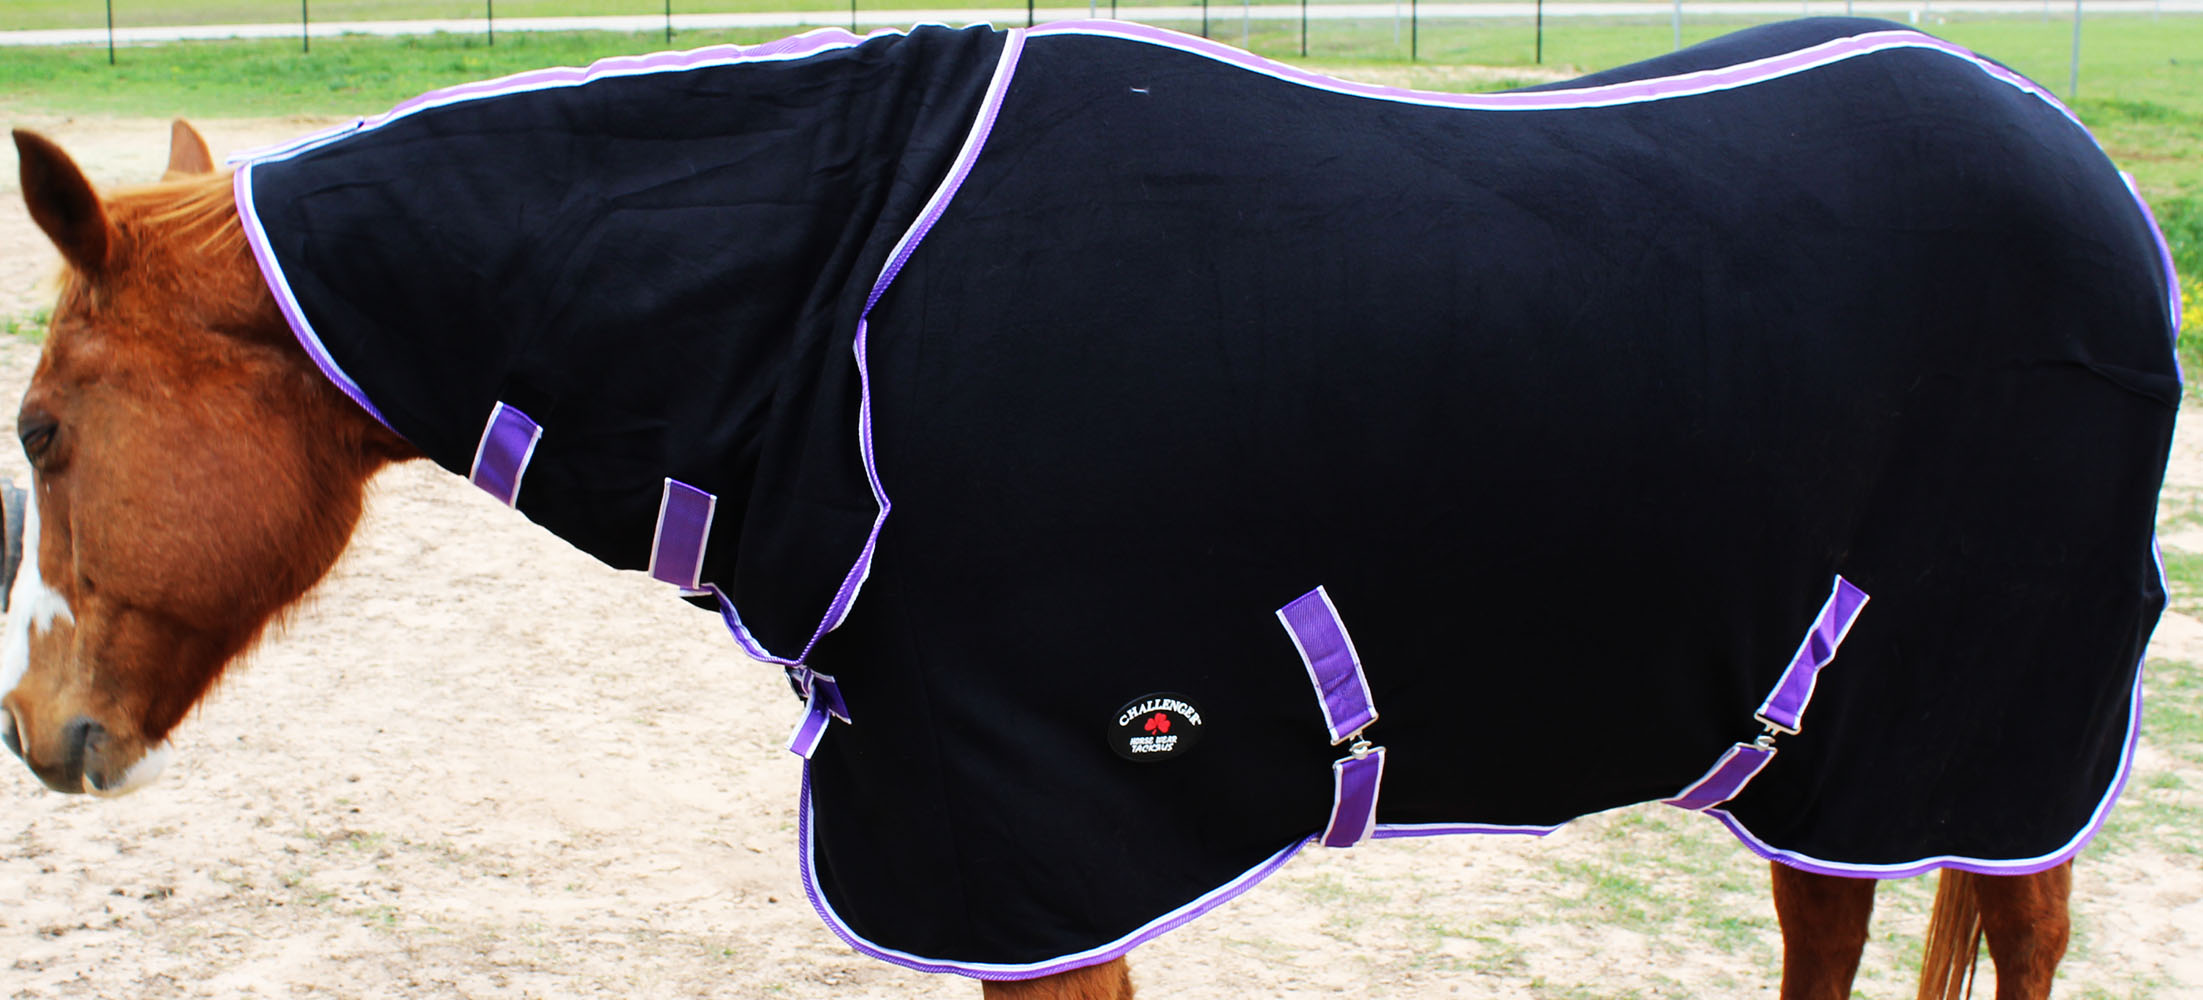 Challenger Horsewear 66 Horse Sheet Polar Fleece Cooler Exercise Blanket Wicks Moisture 4391N